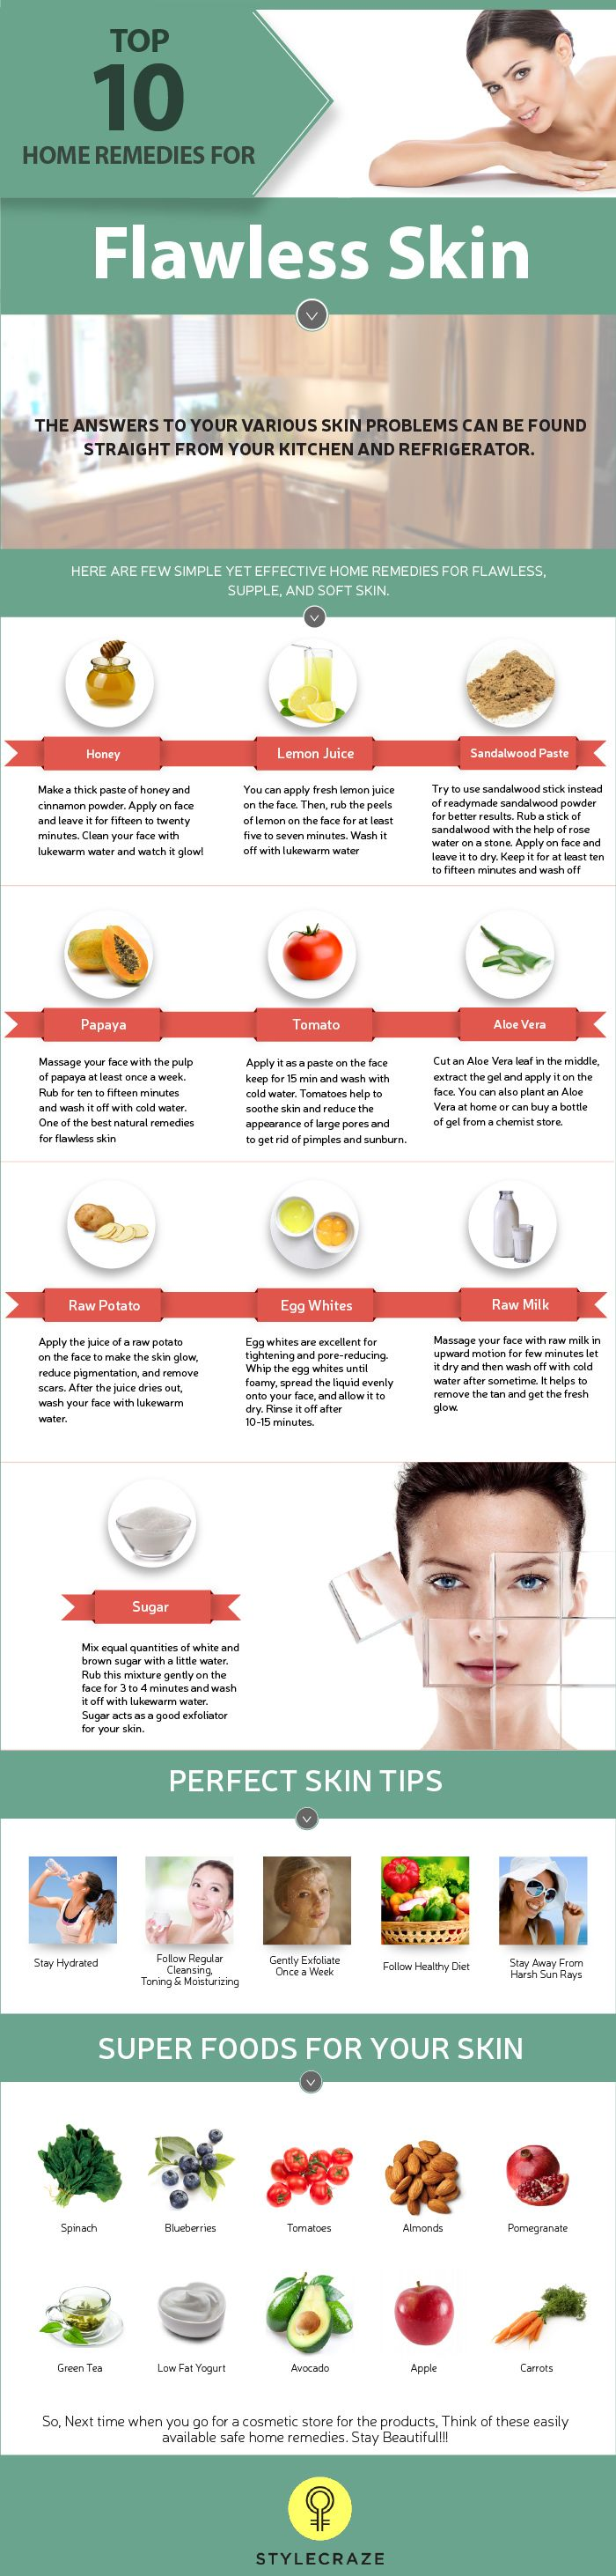 best Natural Remedies images on Pinterest  Natural remedies